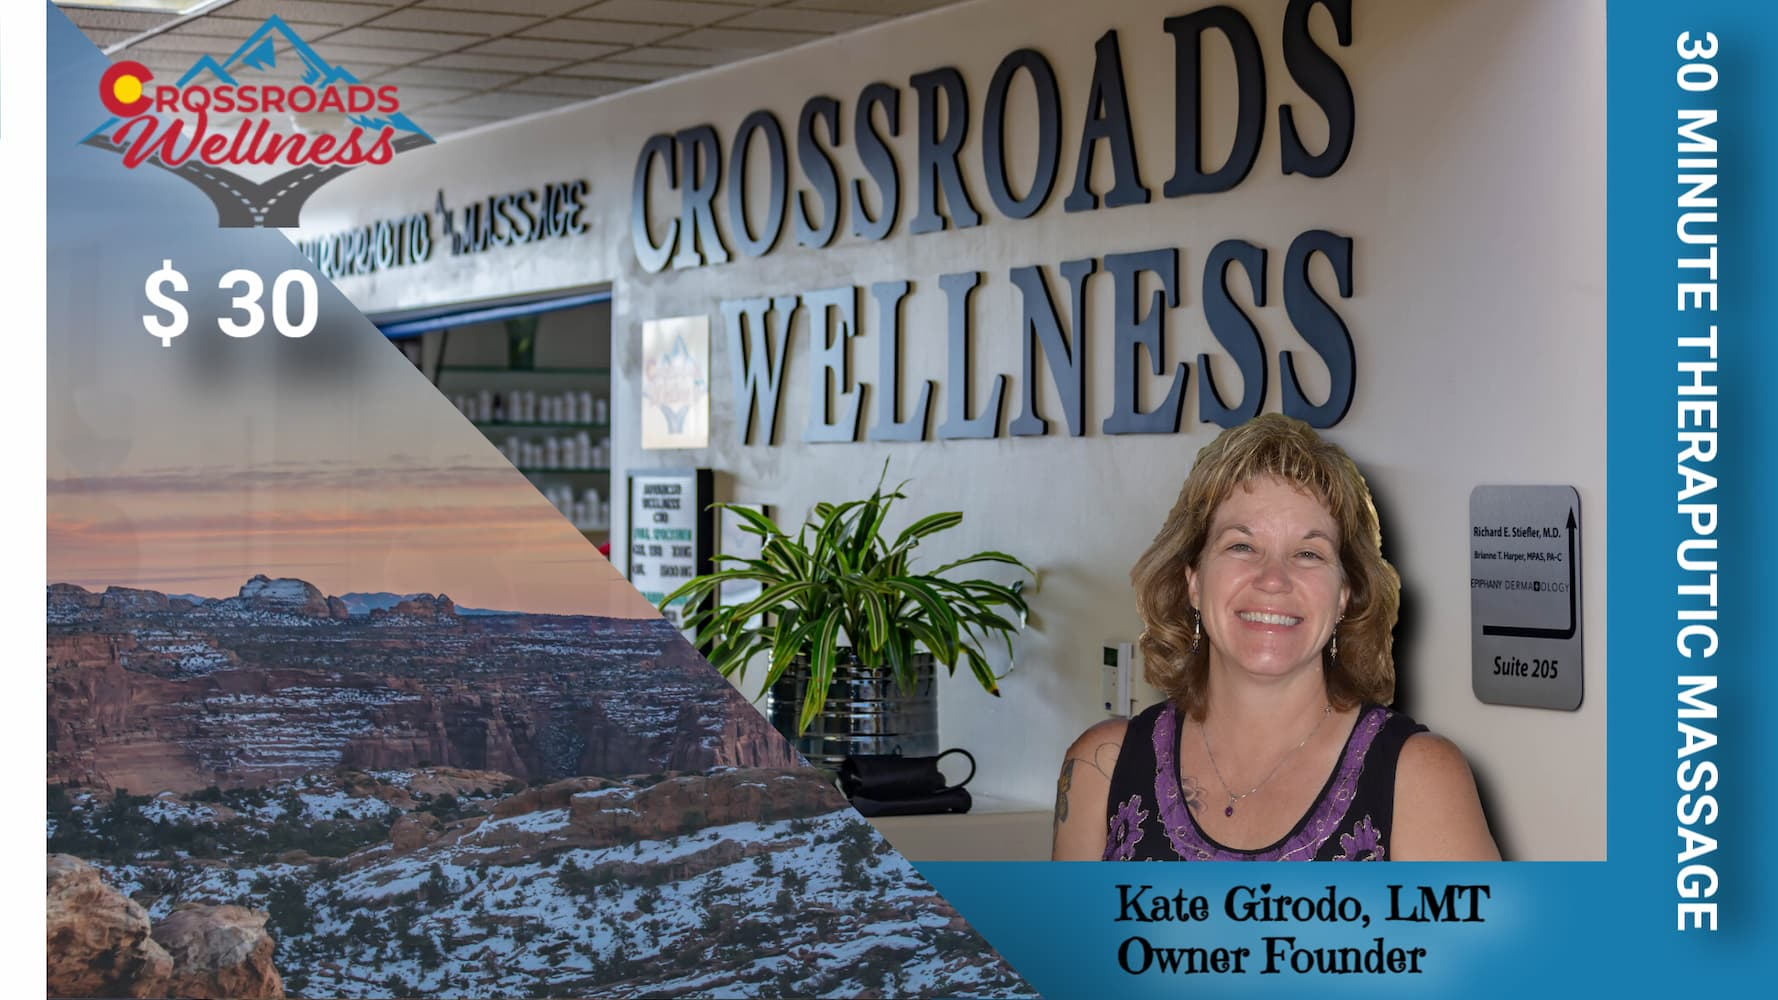 30 MINUTE THERAPUTIC MASSAGE with Kate Girodo, LMT